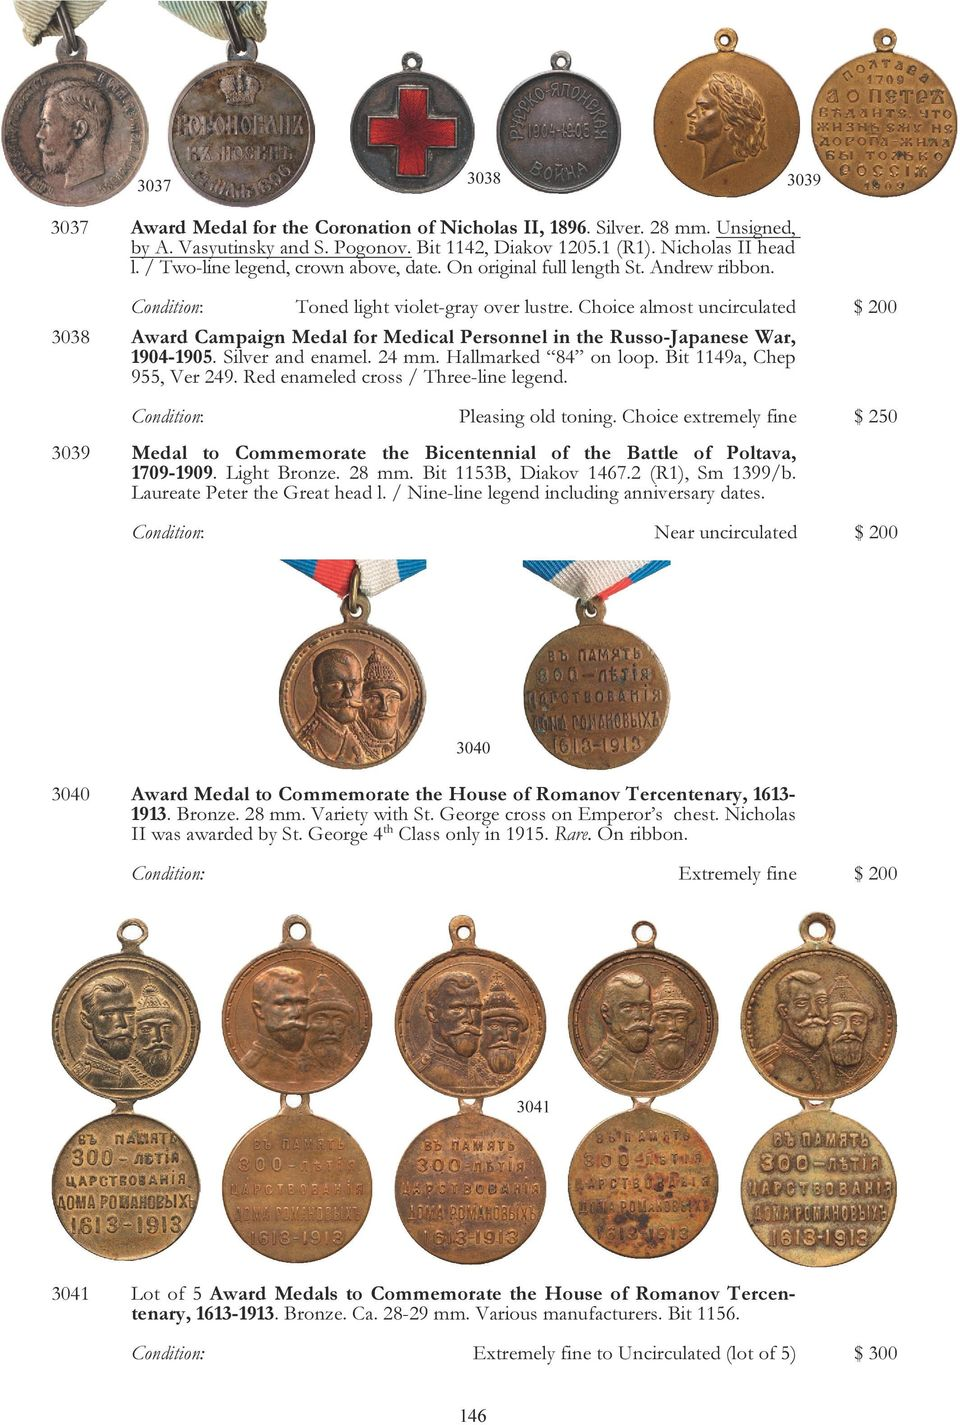 Choice almost uncirculated $ 200 3038 Award Campaign Medal for Medical Personnel in the Russo-Japanese War, 1904-1905. Silver and enamel. 24 mm. Hallmarked 84 on loop. Bit 1149a, Chep 955, Ver 249.